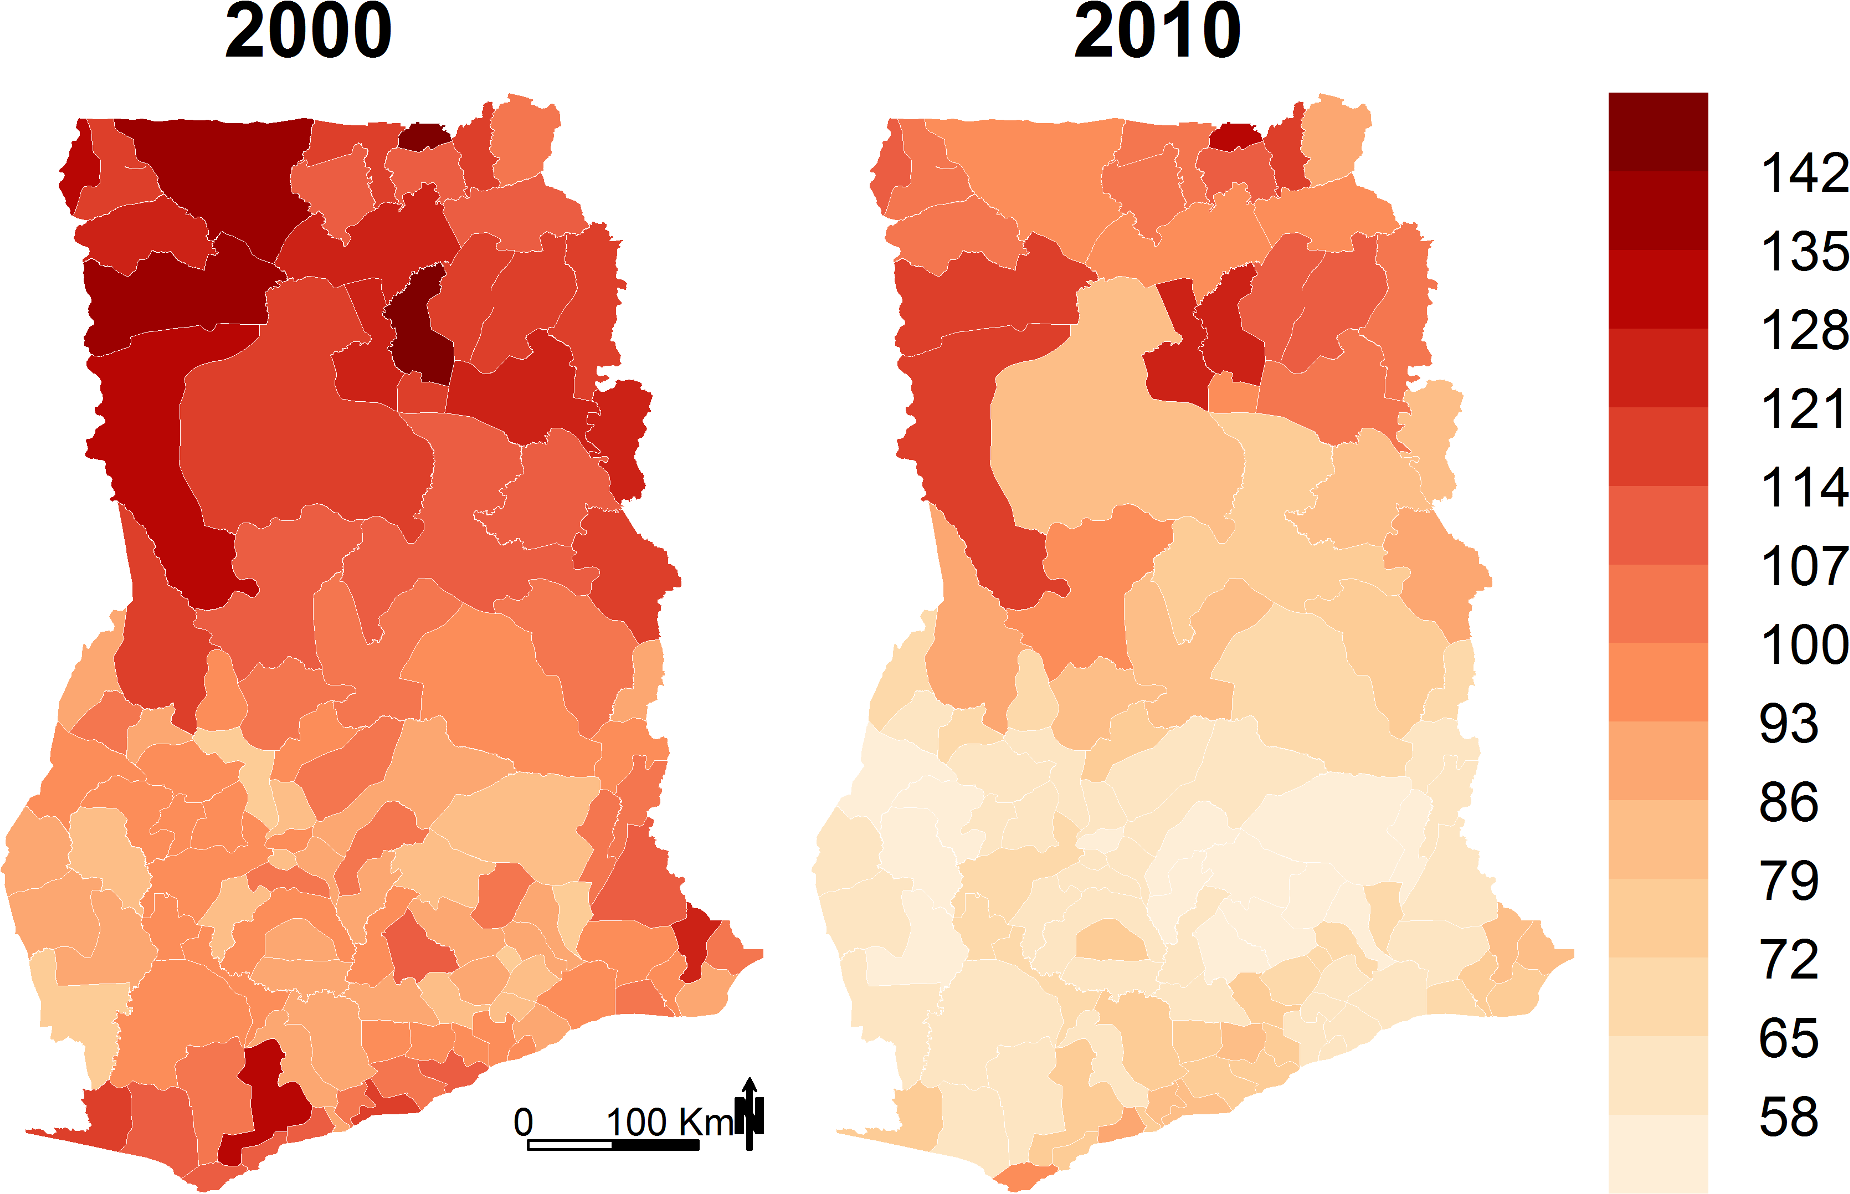 Under-five mortality (deaths per 1,000 live births) by district in 2000 and 2010.